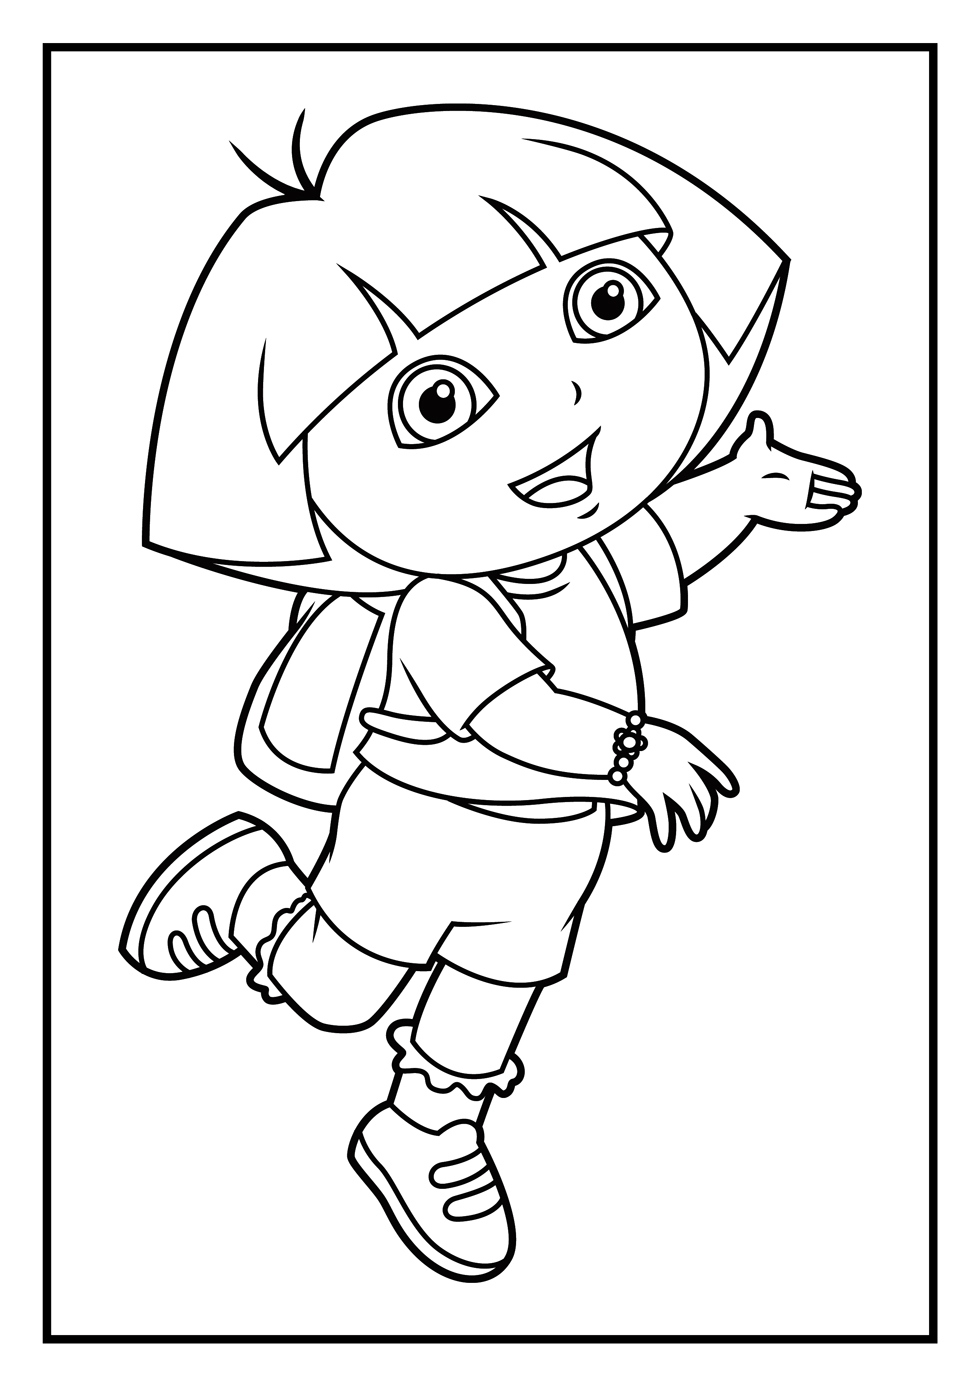 dora colouring pictures dora coloring pages diego coloring pages colouring pictures dora